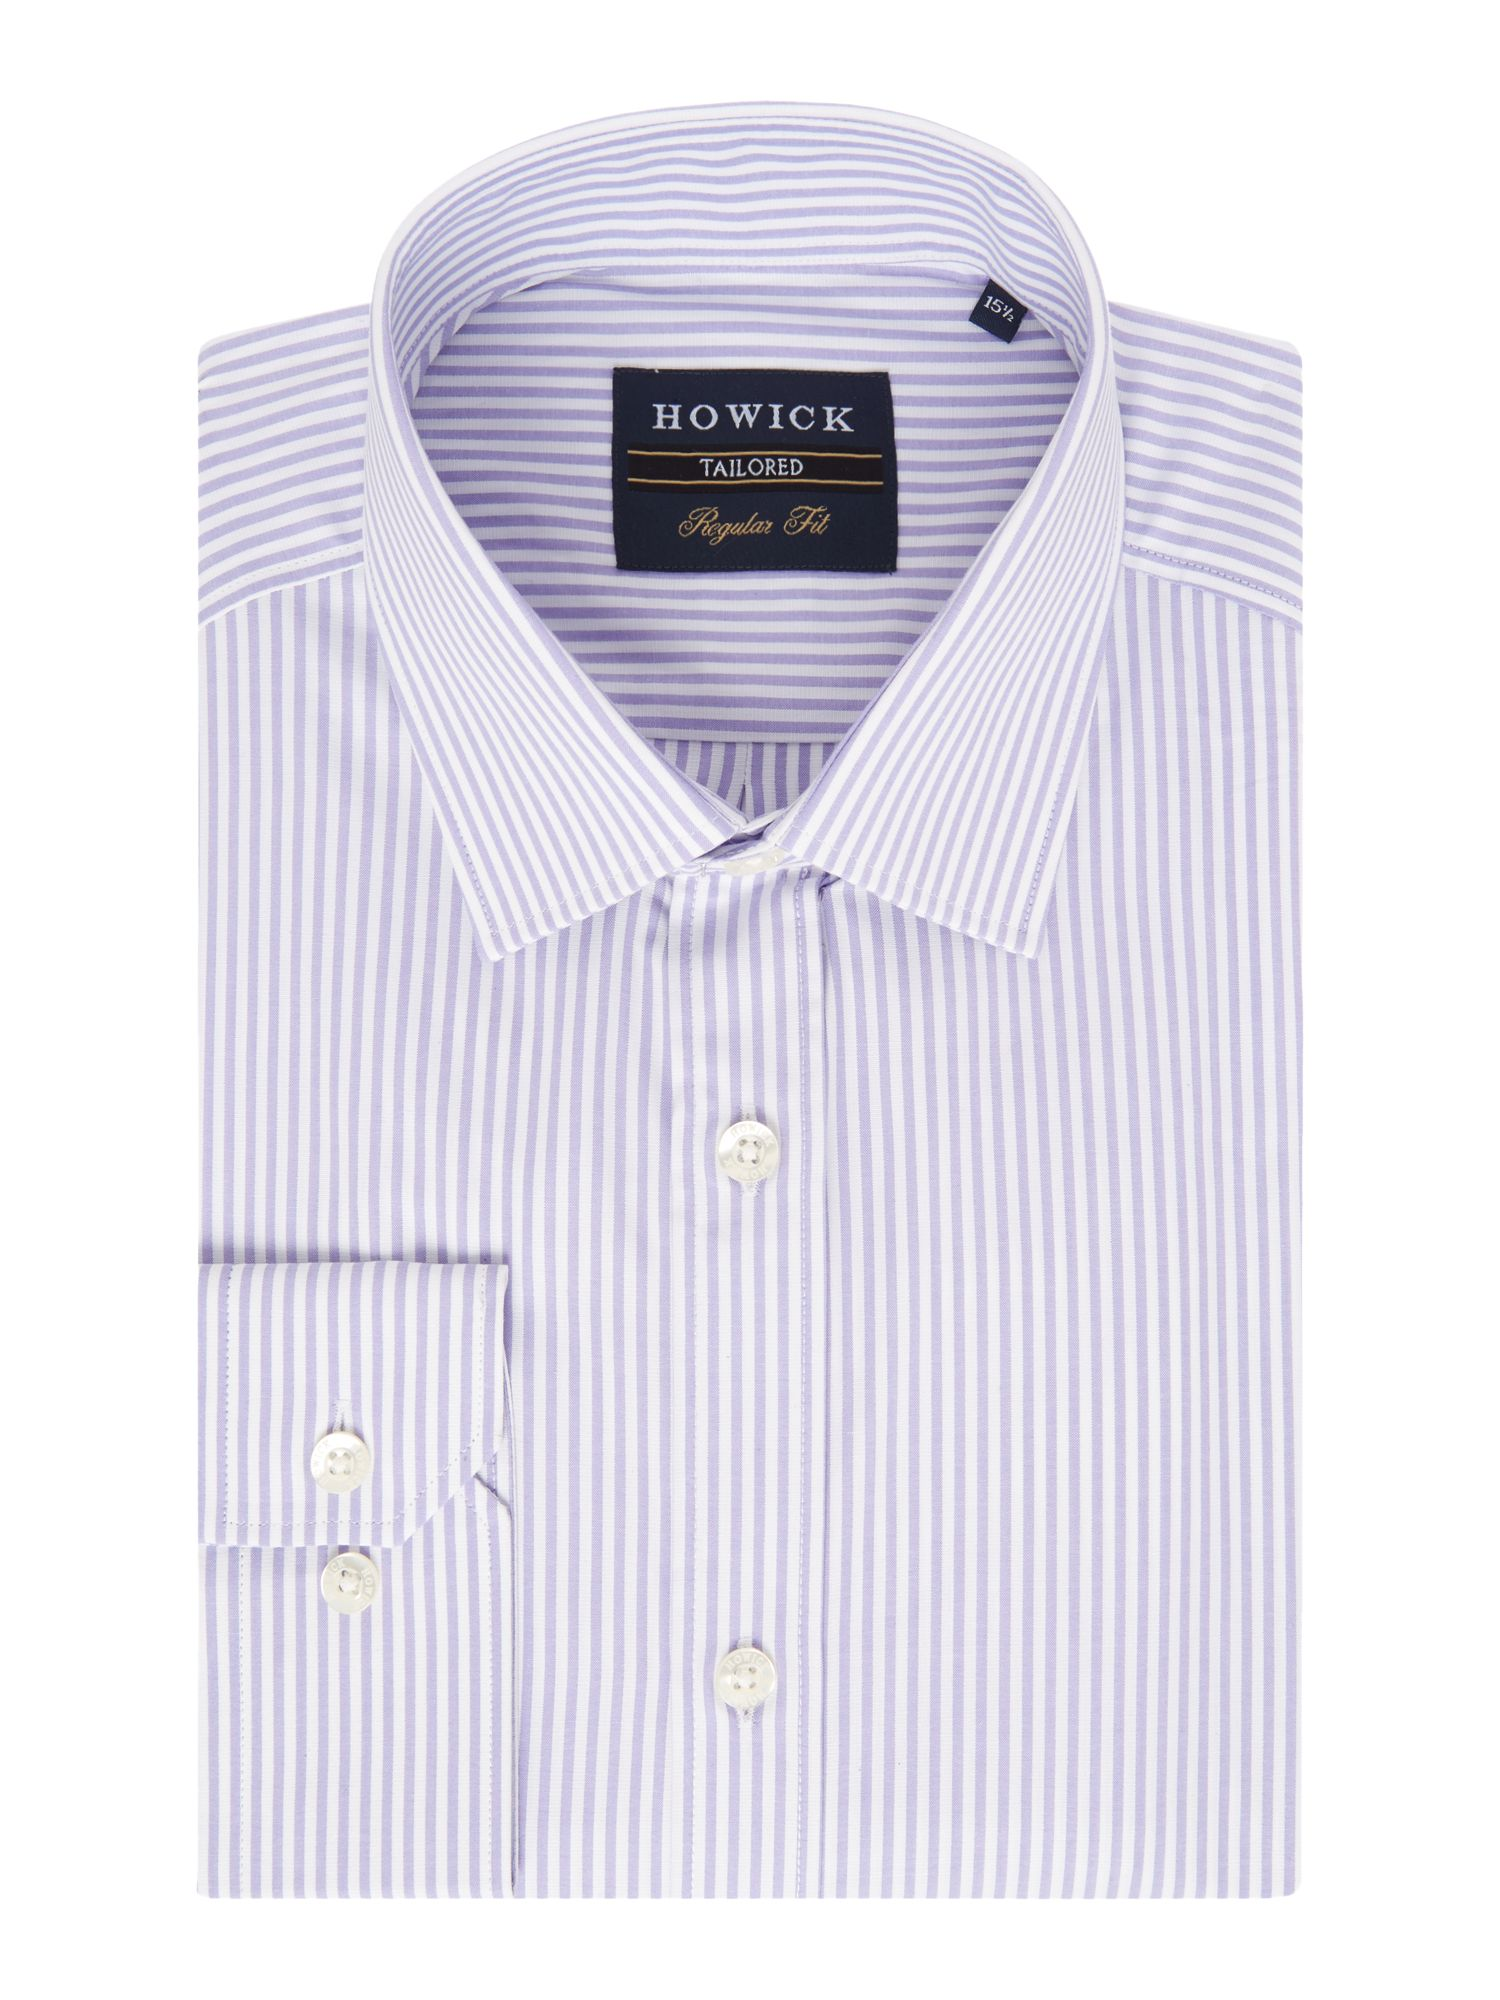 Howick Tailored Men's Howick Tailored Pine Micro Stripe Shirt, Lilac